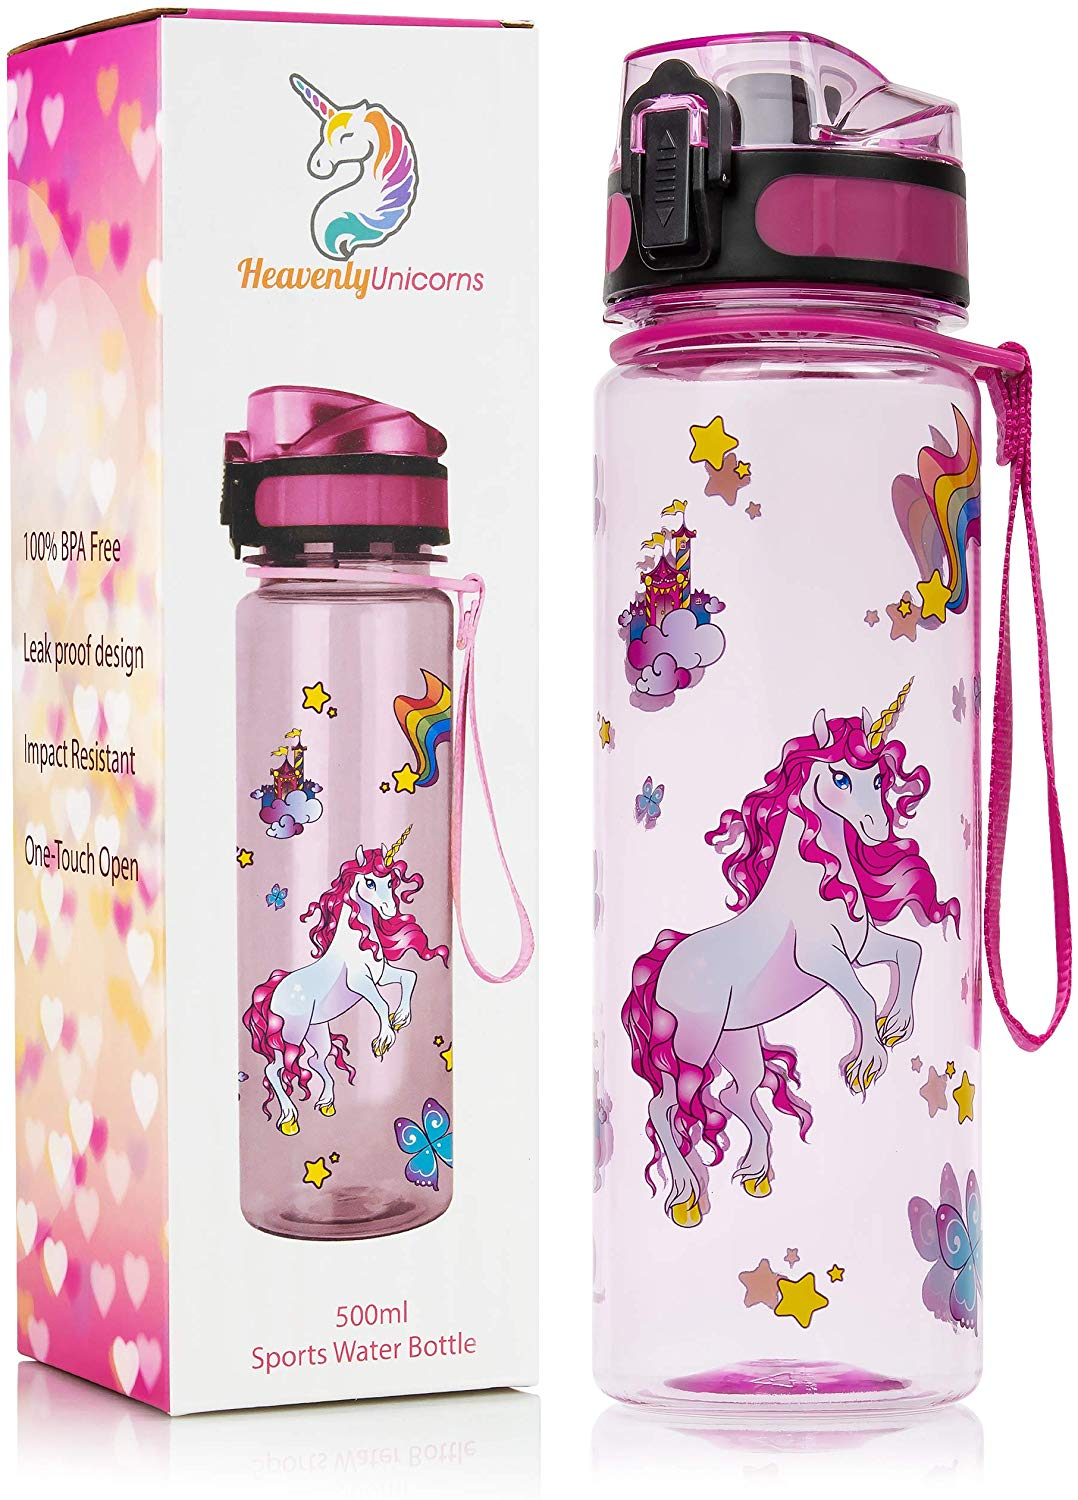 HeavenlyUnicorns Kids Unicorn Water Bottles, BPA Free, 500ml